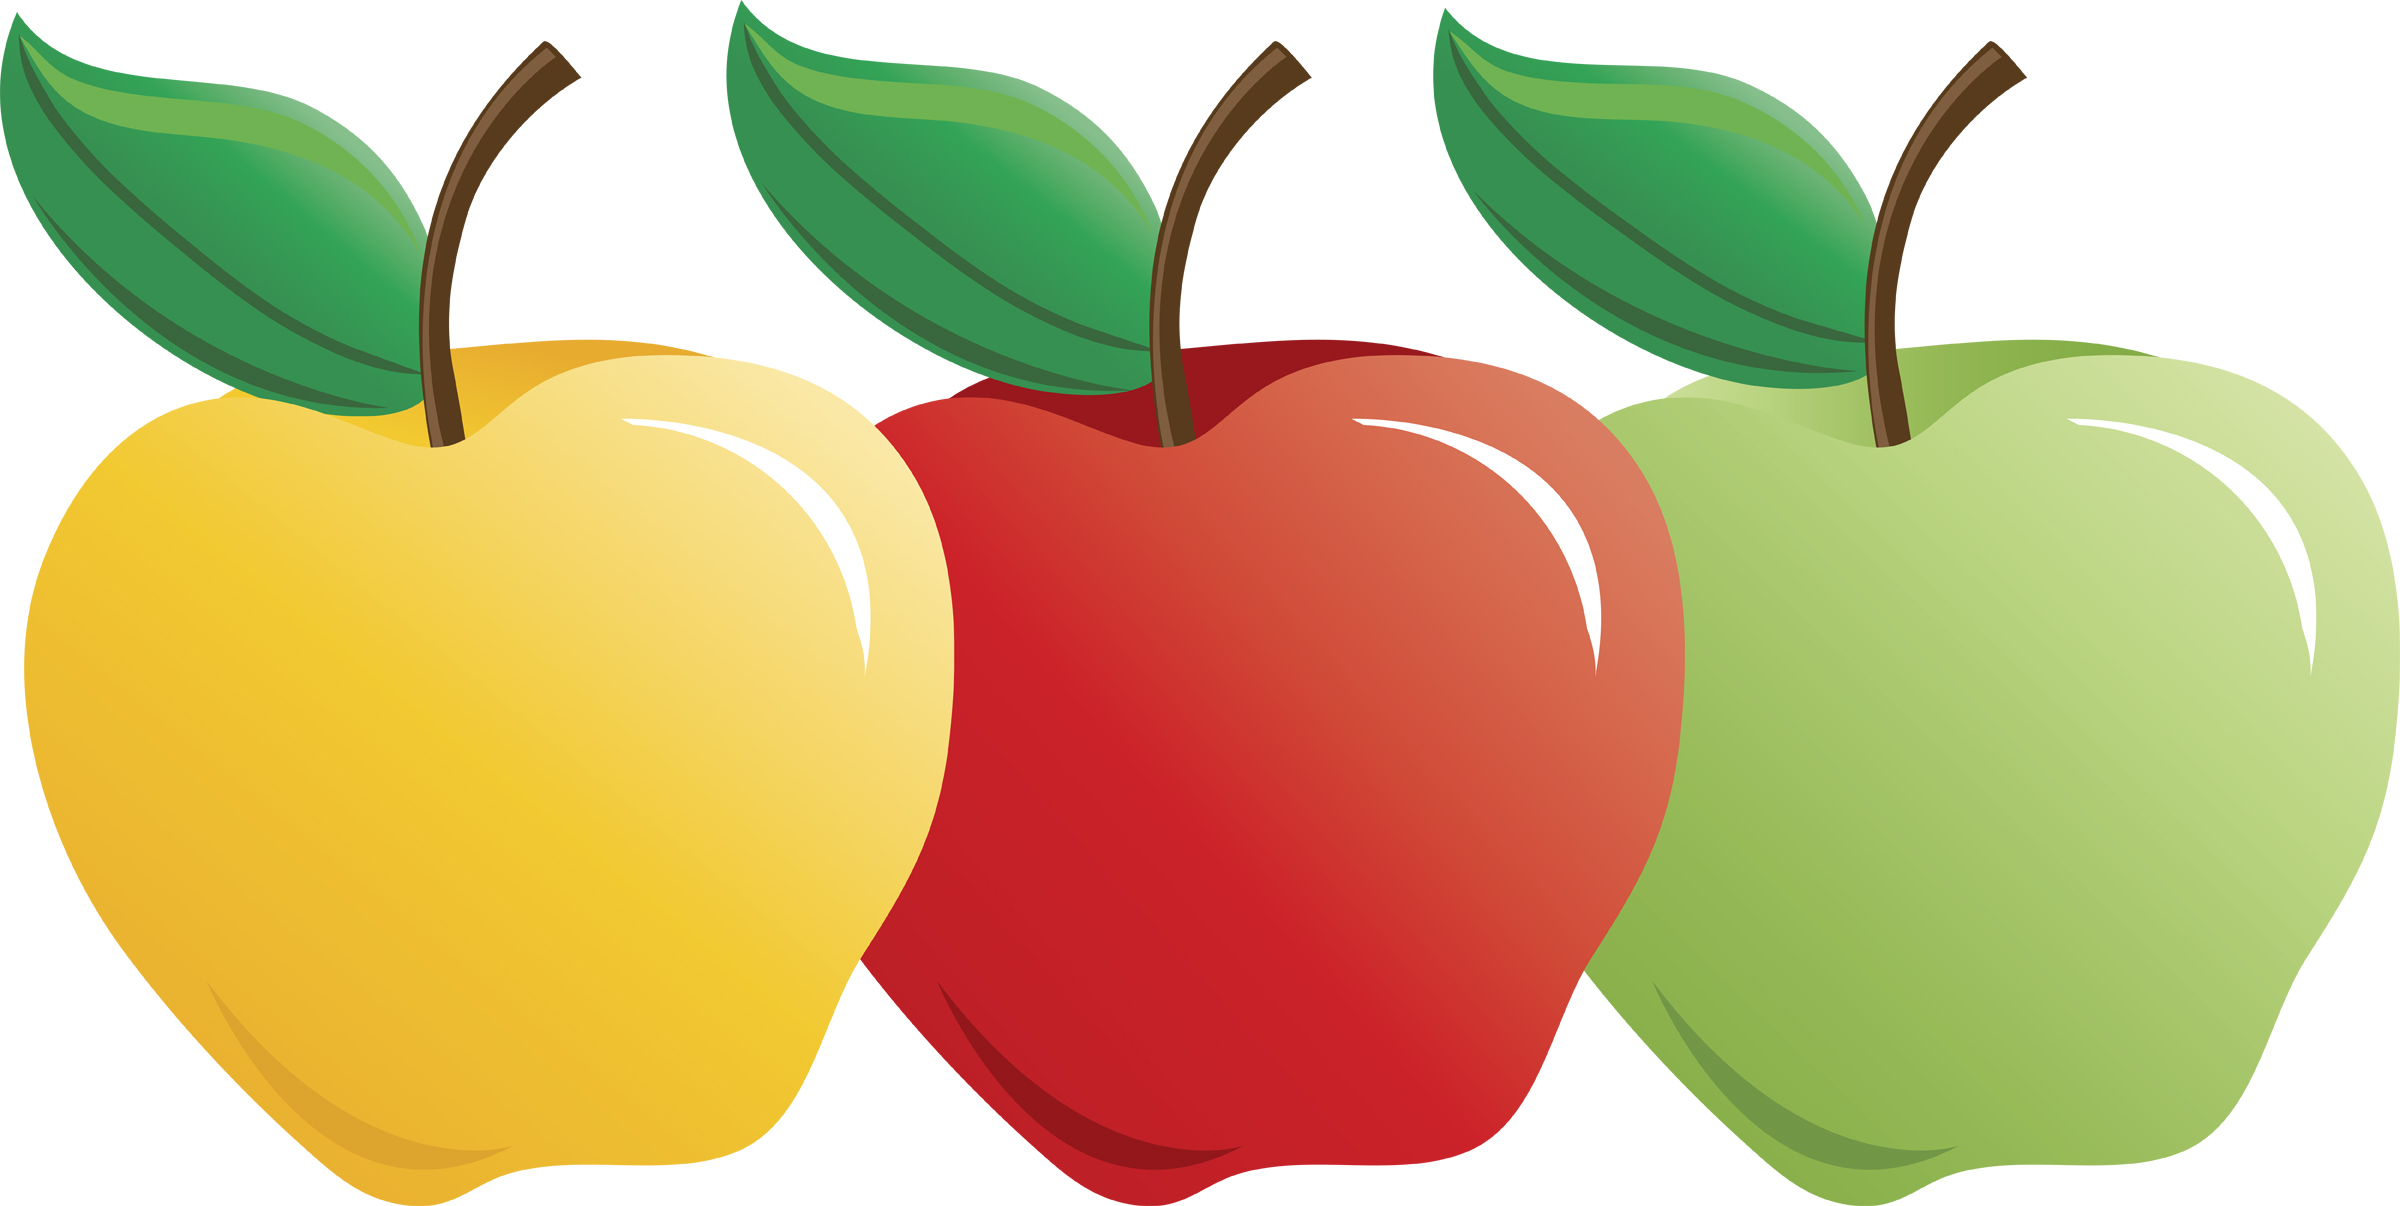 1 apple clipart png download One apple clipart - ClipartFest png download